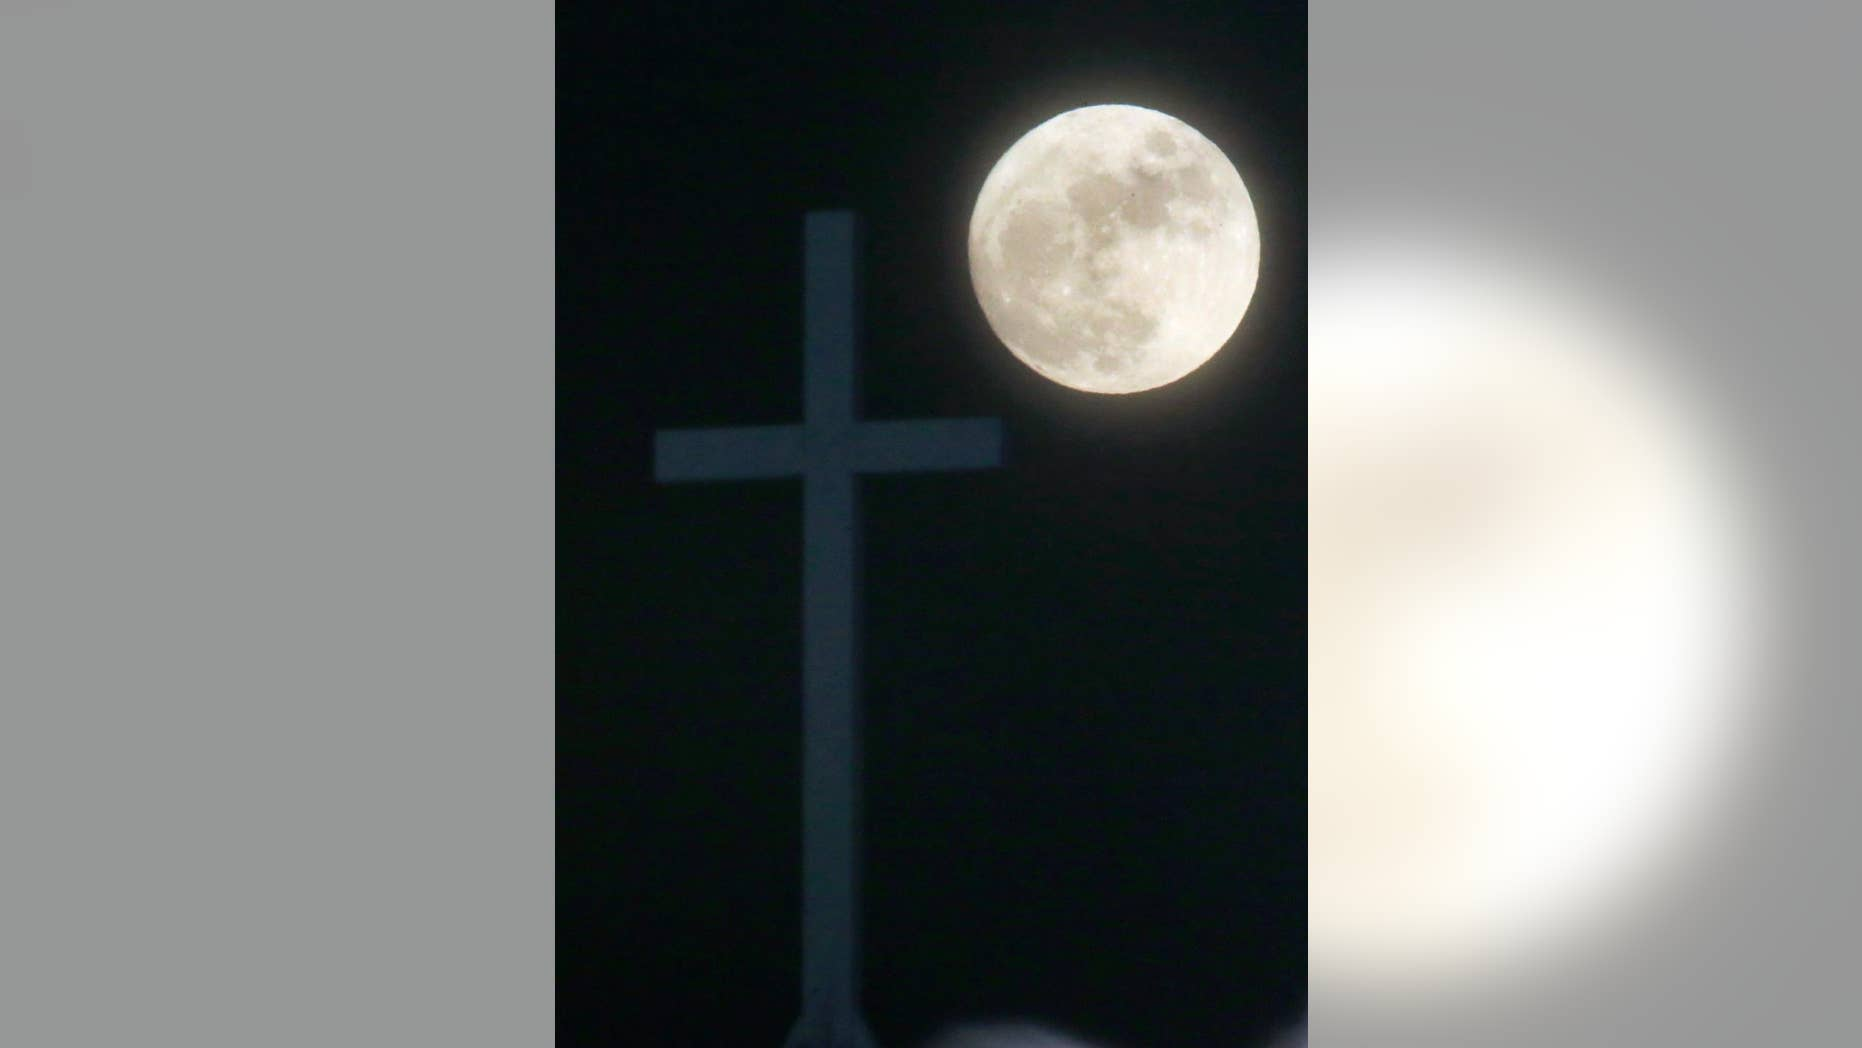 The Long Night Moon rises behind a cross at Christ Community Church in Lawrence, Kan., Thursday, Dec. 24, 2015. When the moon turns full, at 5:11am cst., it will be the first full moon to fall on Christmas day since 1977. Named the Long Night Moon because it's the first full moon to follow the winter solstice, it's also known as the Cold Moon. (AP Photo/Orlin Wagner)